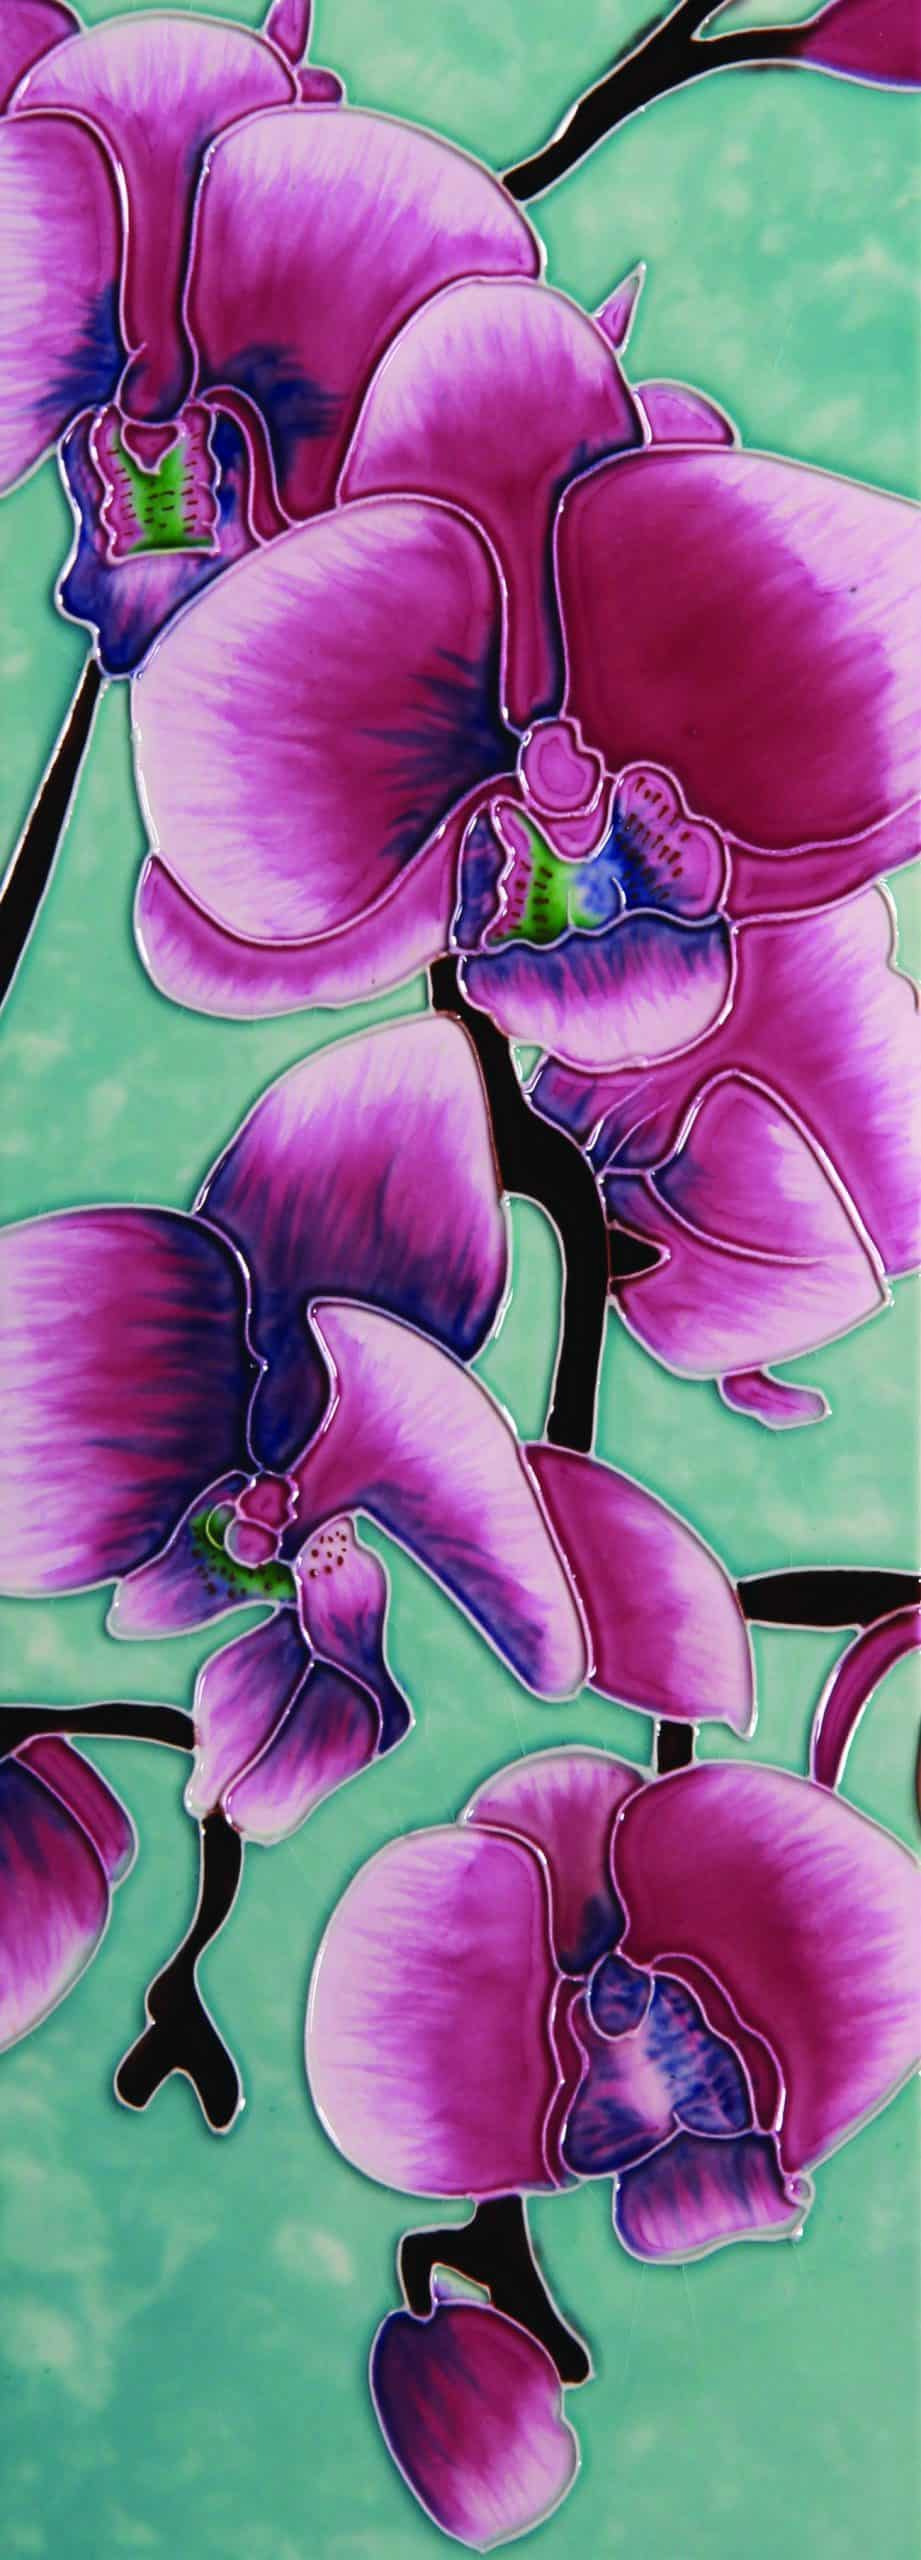 Orchid Beauty 6×16 (121185)